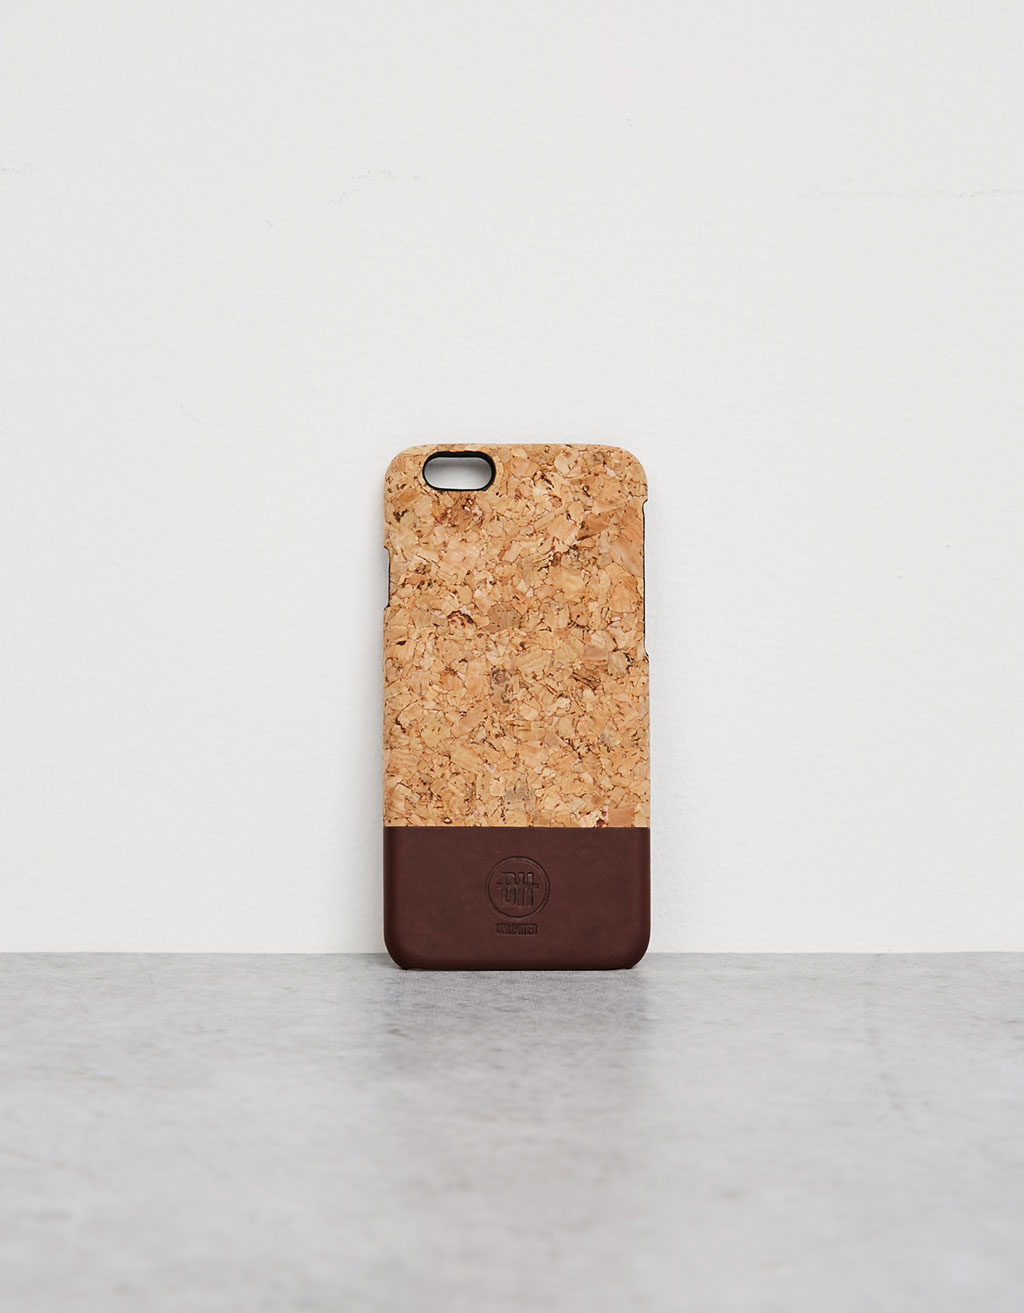 Cork iPhone 6/6s case